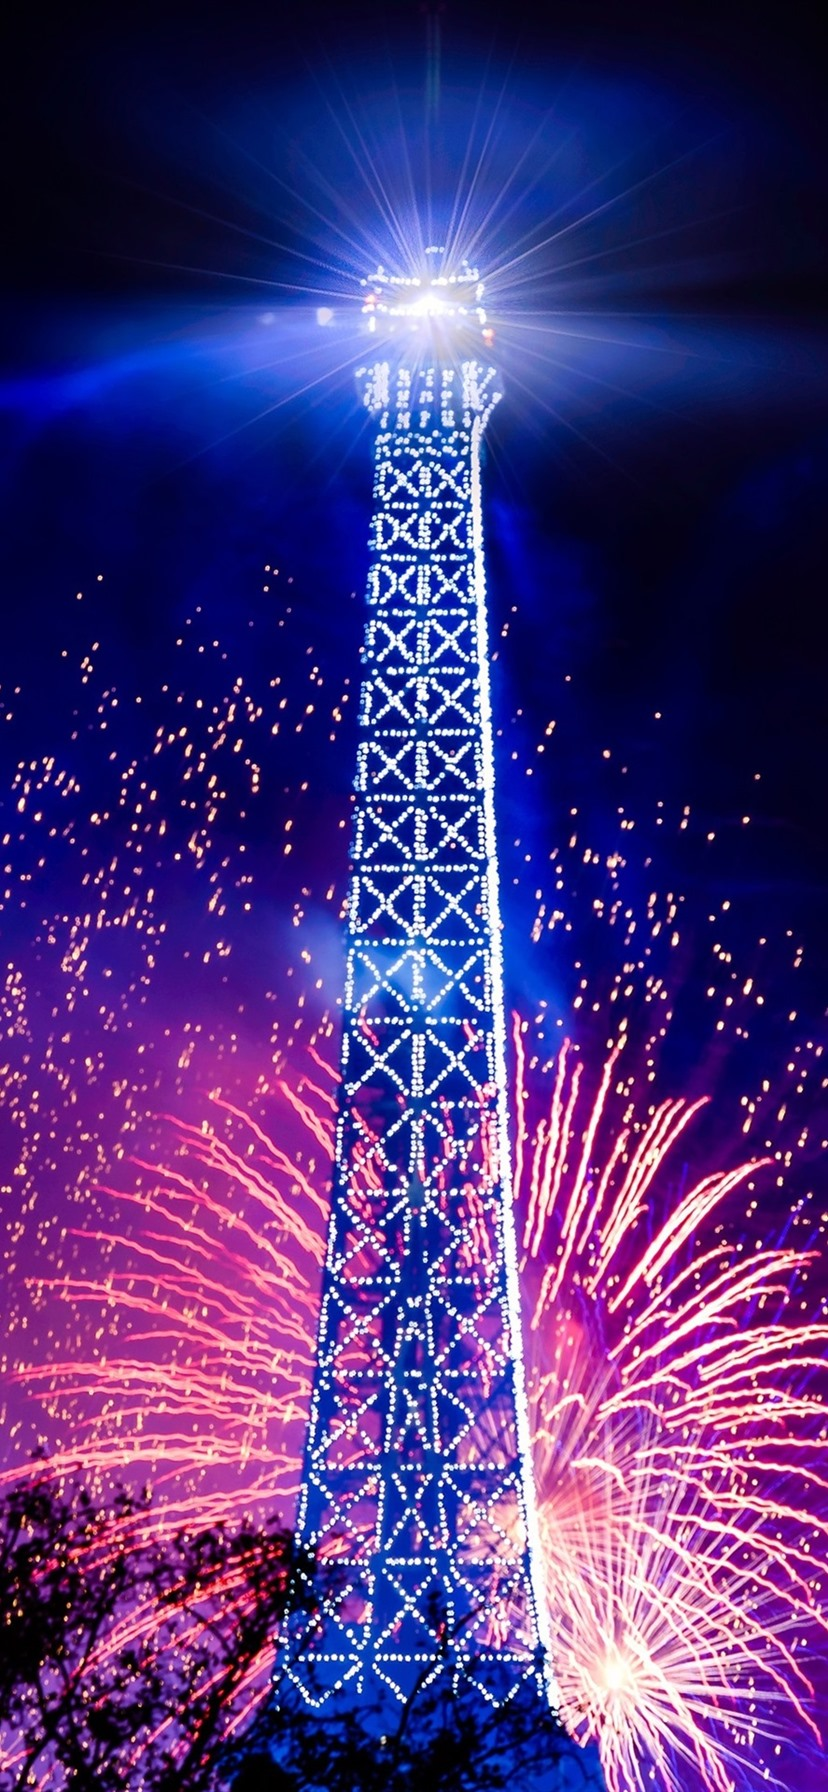 Eiffel Tower Holiday Night Lights Fireworks France 1080x1920